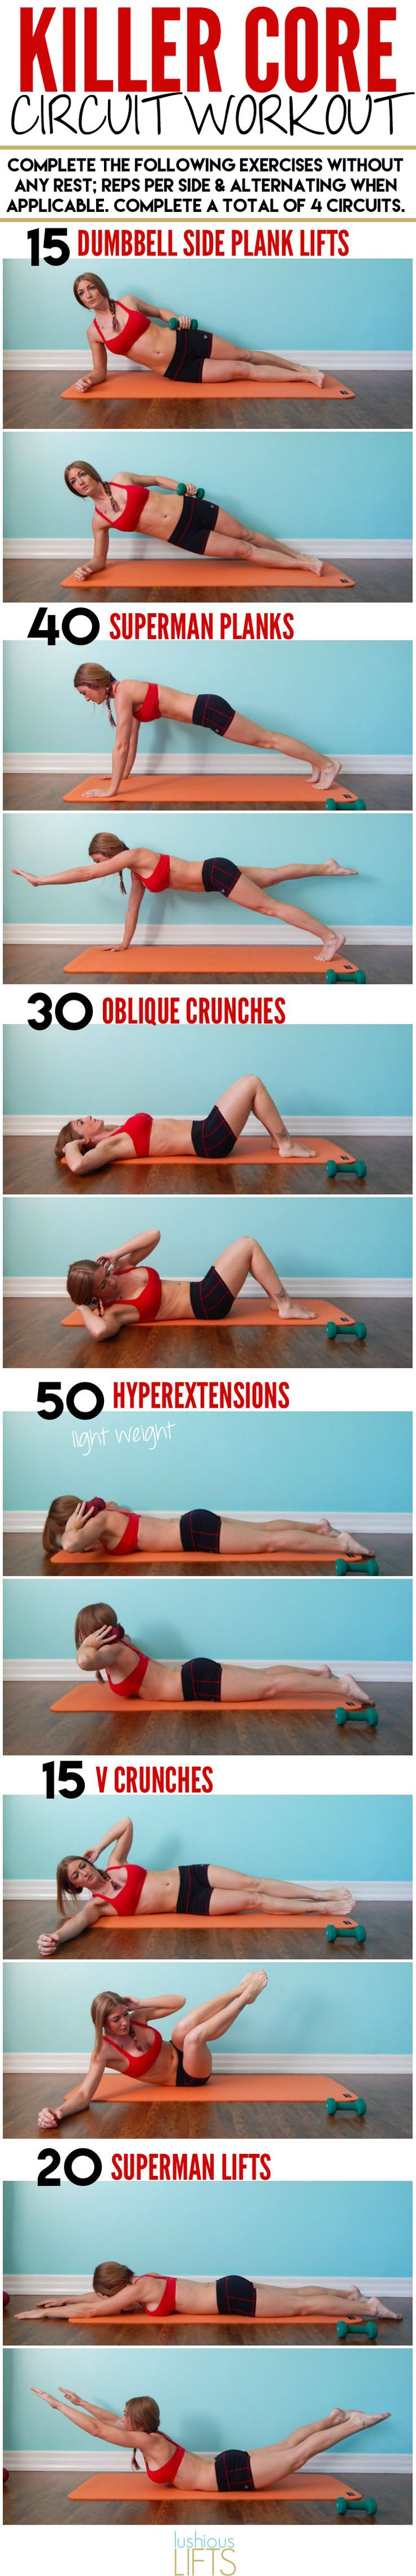 Nothing but 30 minutes of toning and tightening with this Killer Core Circuit Workout || lushiouslifts.com #abs #core #workout